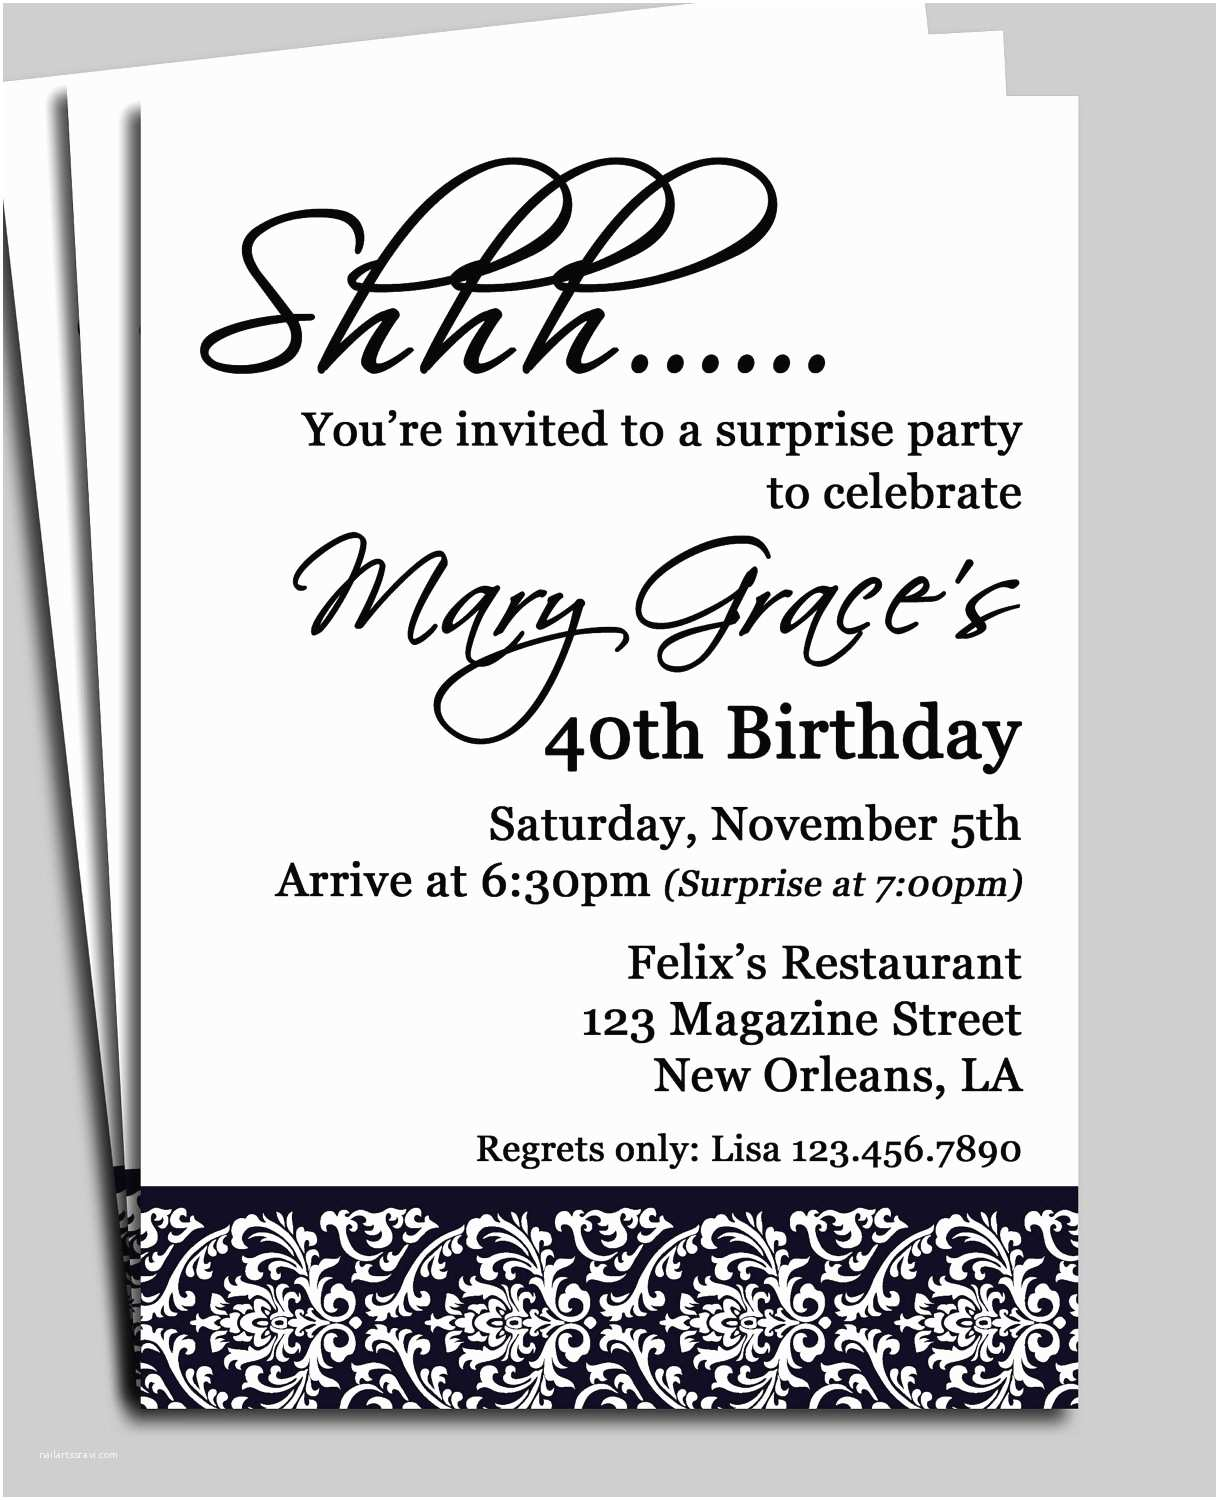 Invitation Wording for Adults Only Party Free Printable Birthday Invitation Cards with Best